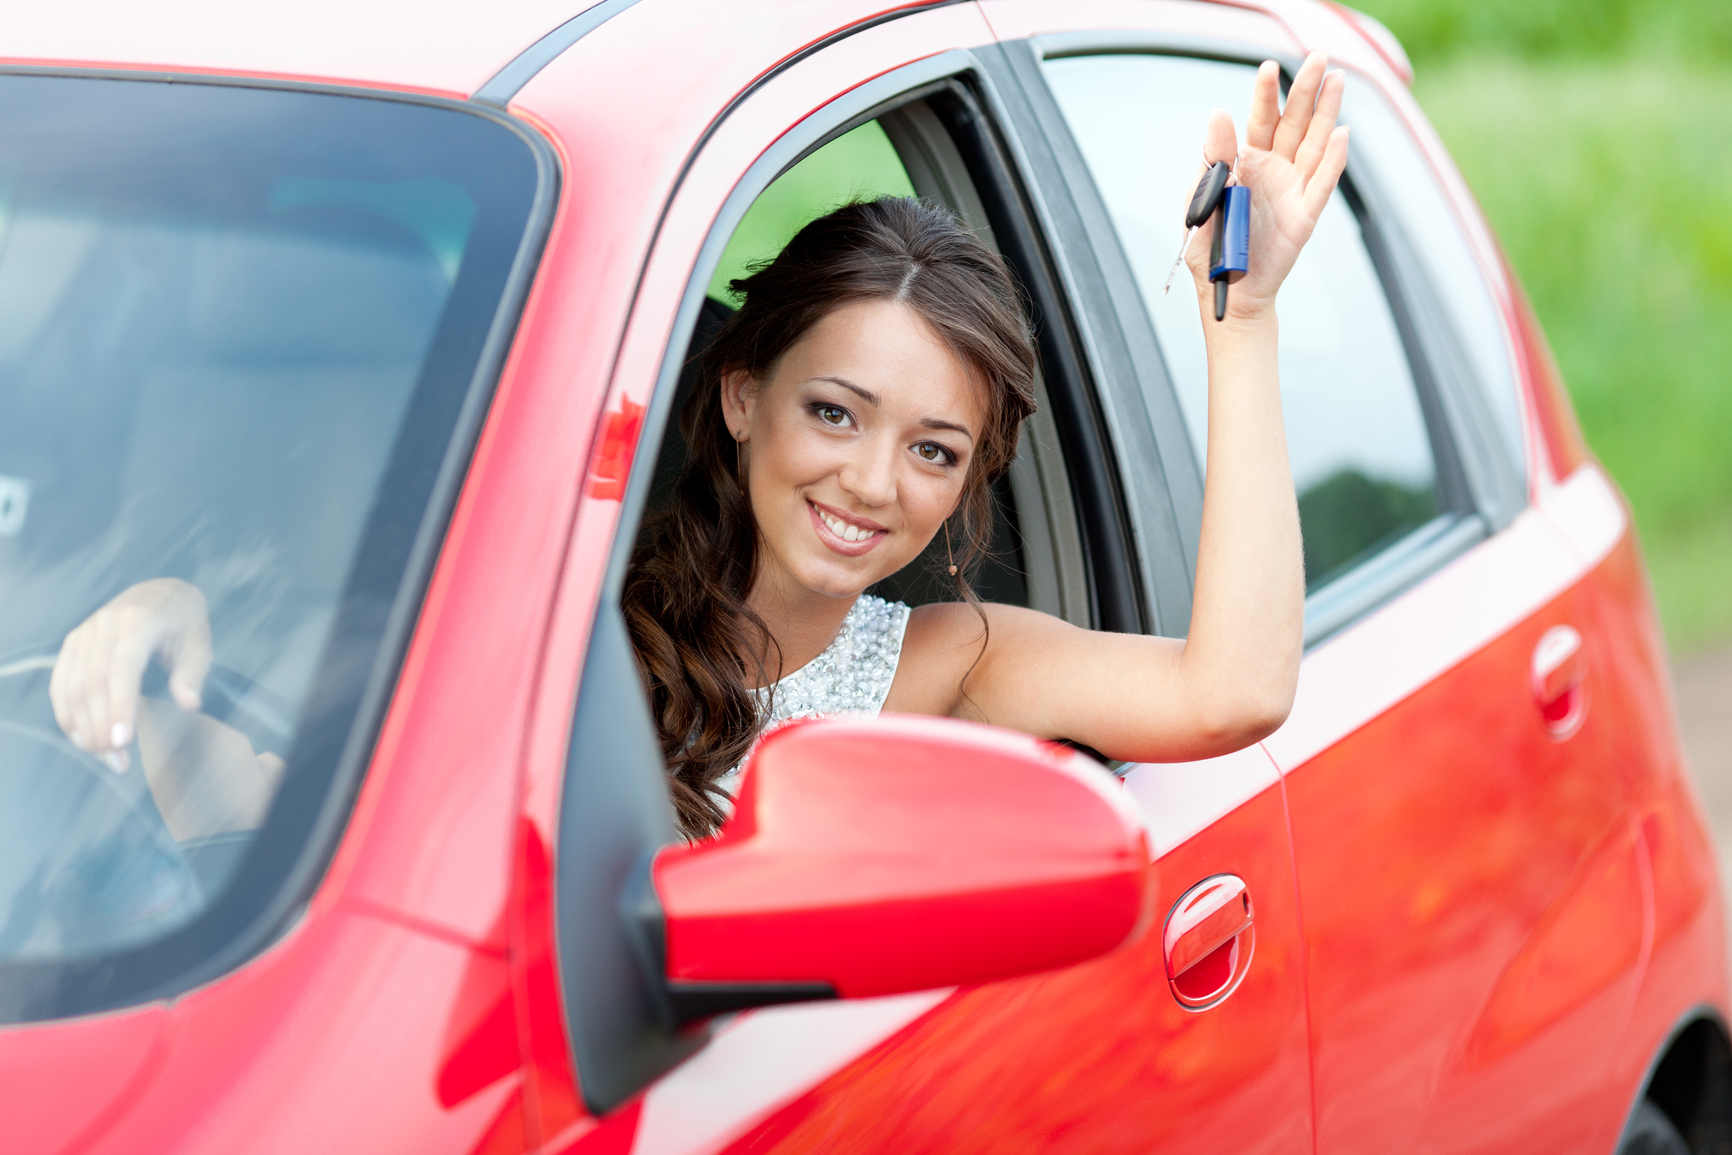 English Driving School, The smartest way to get your driver license.